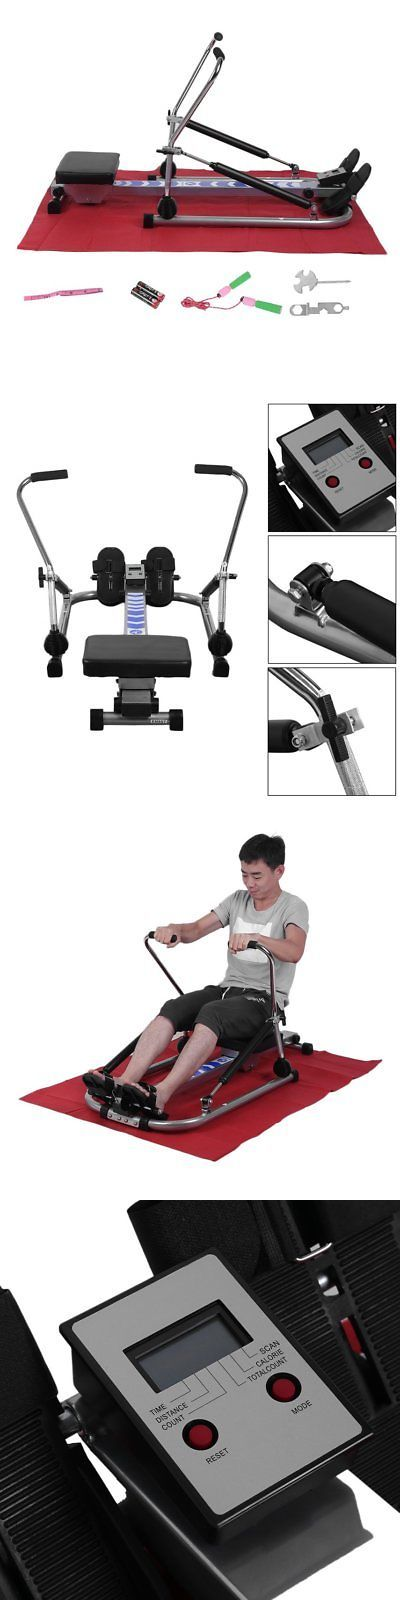 Rowing Machines 28060: Stamina Rowing Machine Cardio Exercise Fitness Workout Rower With Monitor New Al -> BUY IT NOW ONLY: $99.29 on eBay!